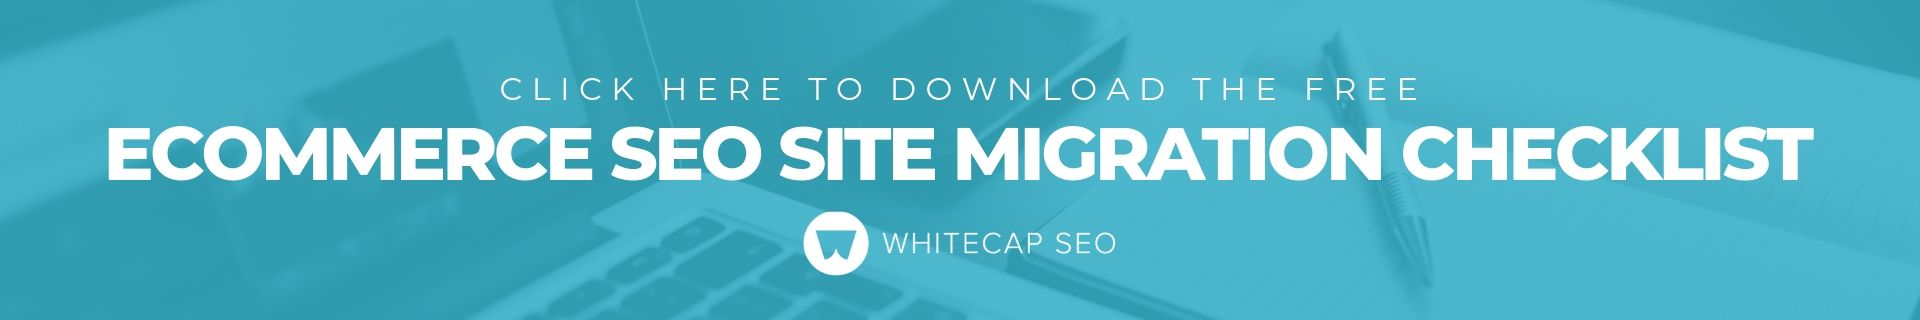 Click here to download the free ecommerce SEO Site migration checklist